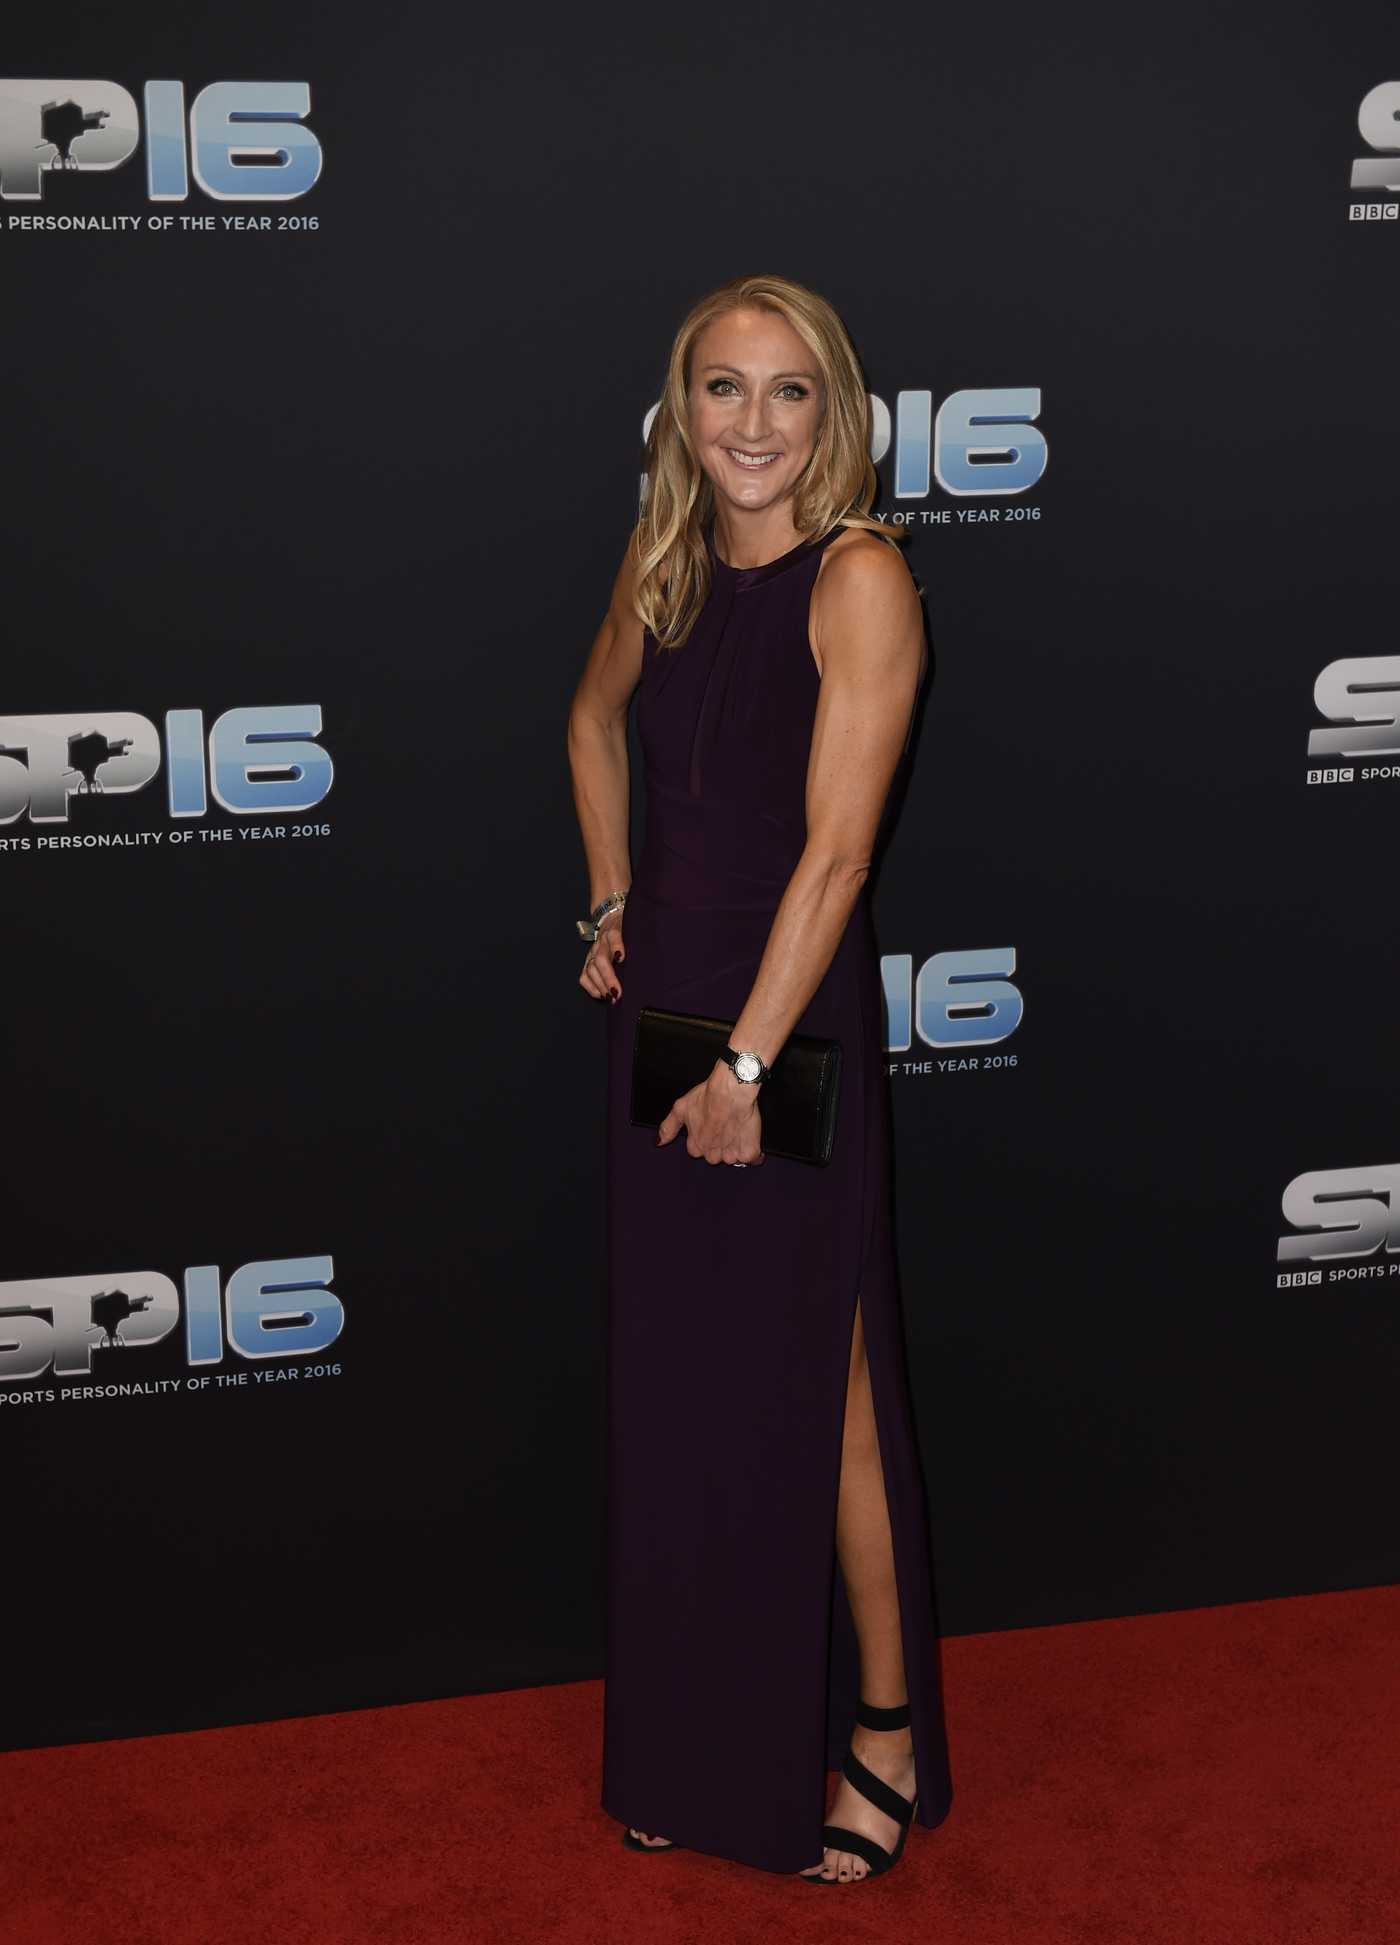 Paula Radcliffe at the BBC Sports Personality of the Year 2016 at Genting Arena in Birmingham 12/18/2016